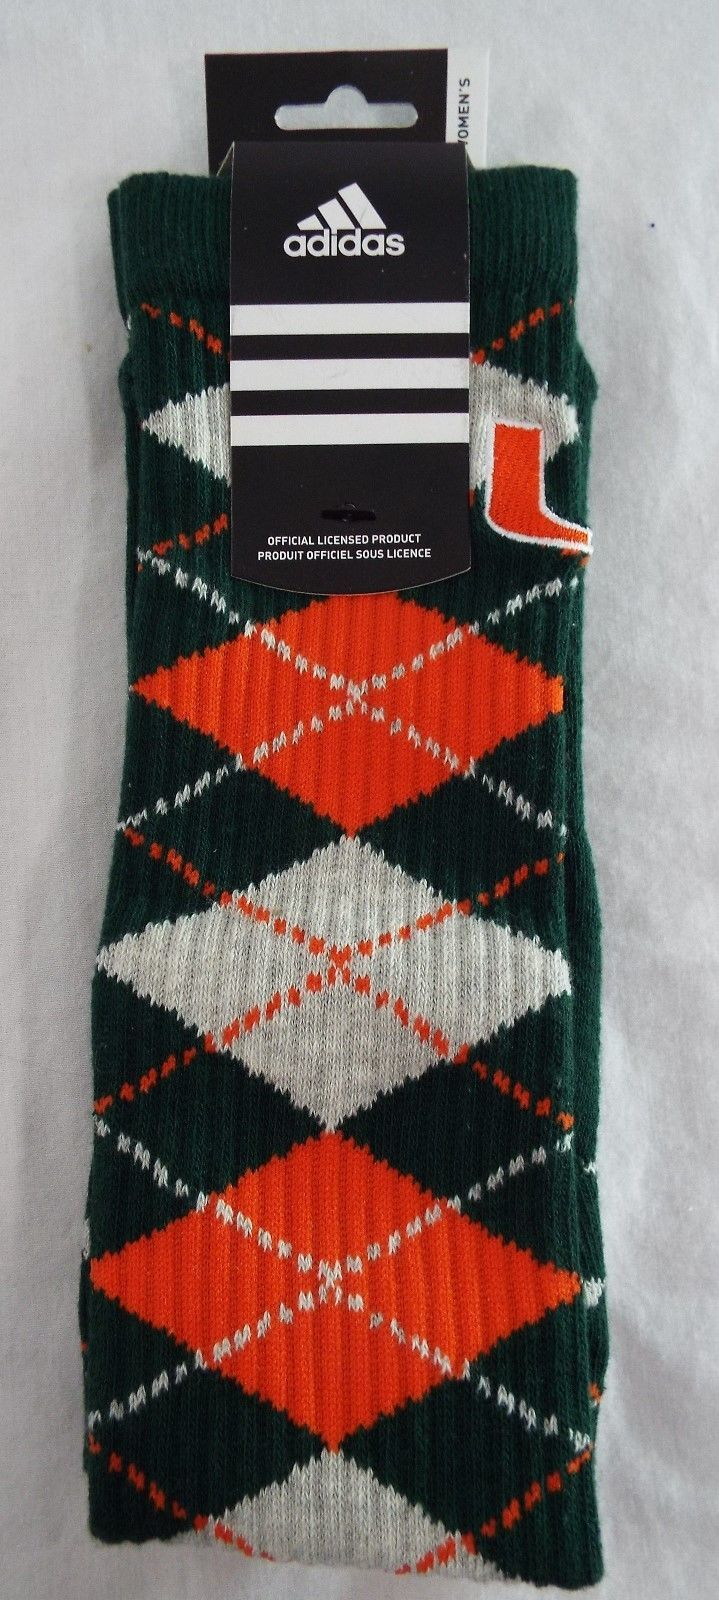 c70f749fe1d S l1600. S l1600. Previous. Adidas University of Miami Hurricanes Womens Knee  High Sport Socks Argyle